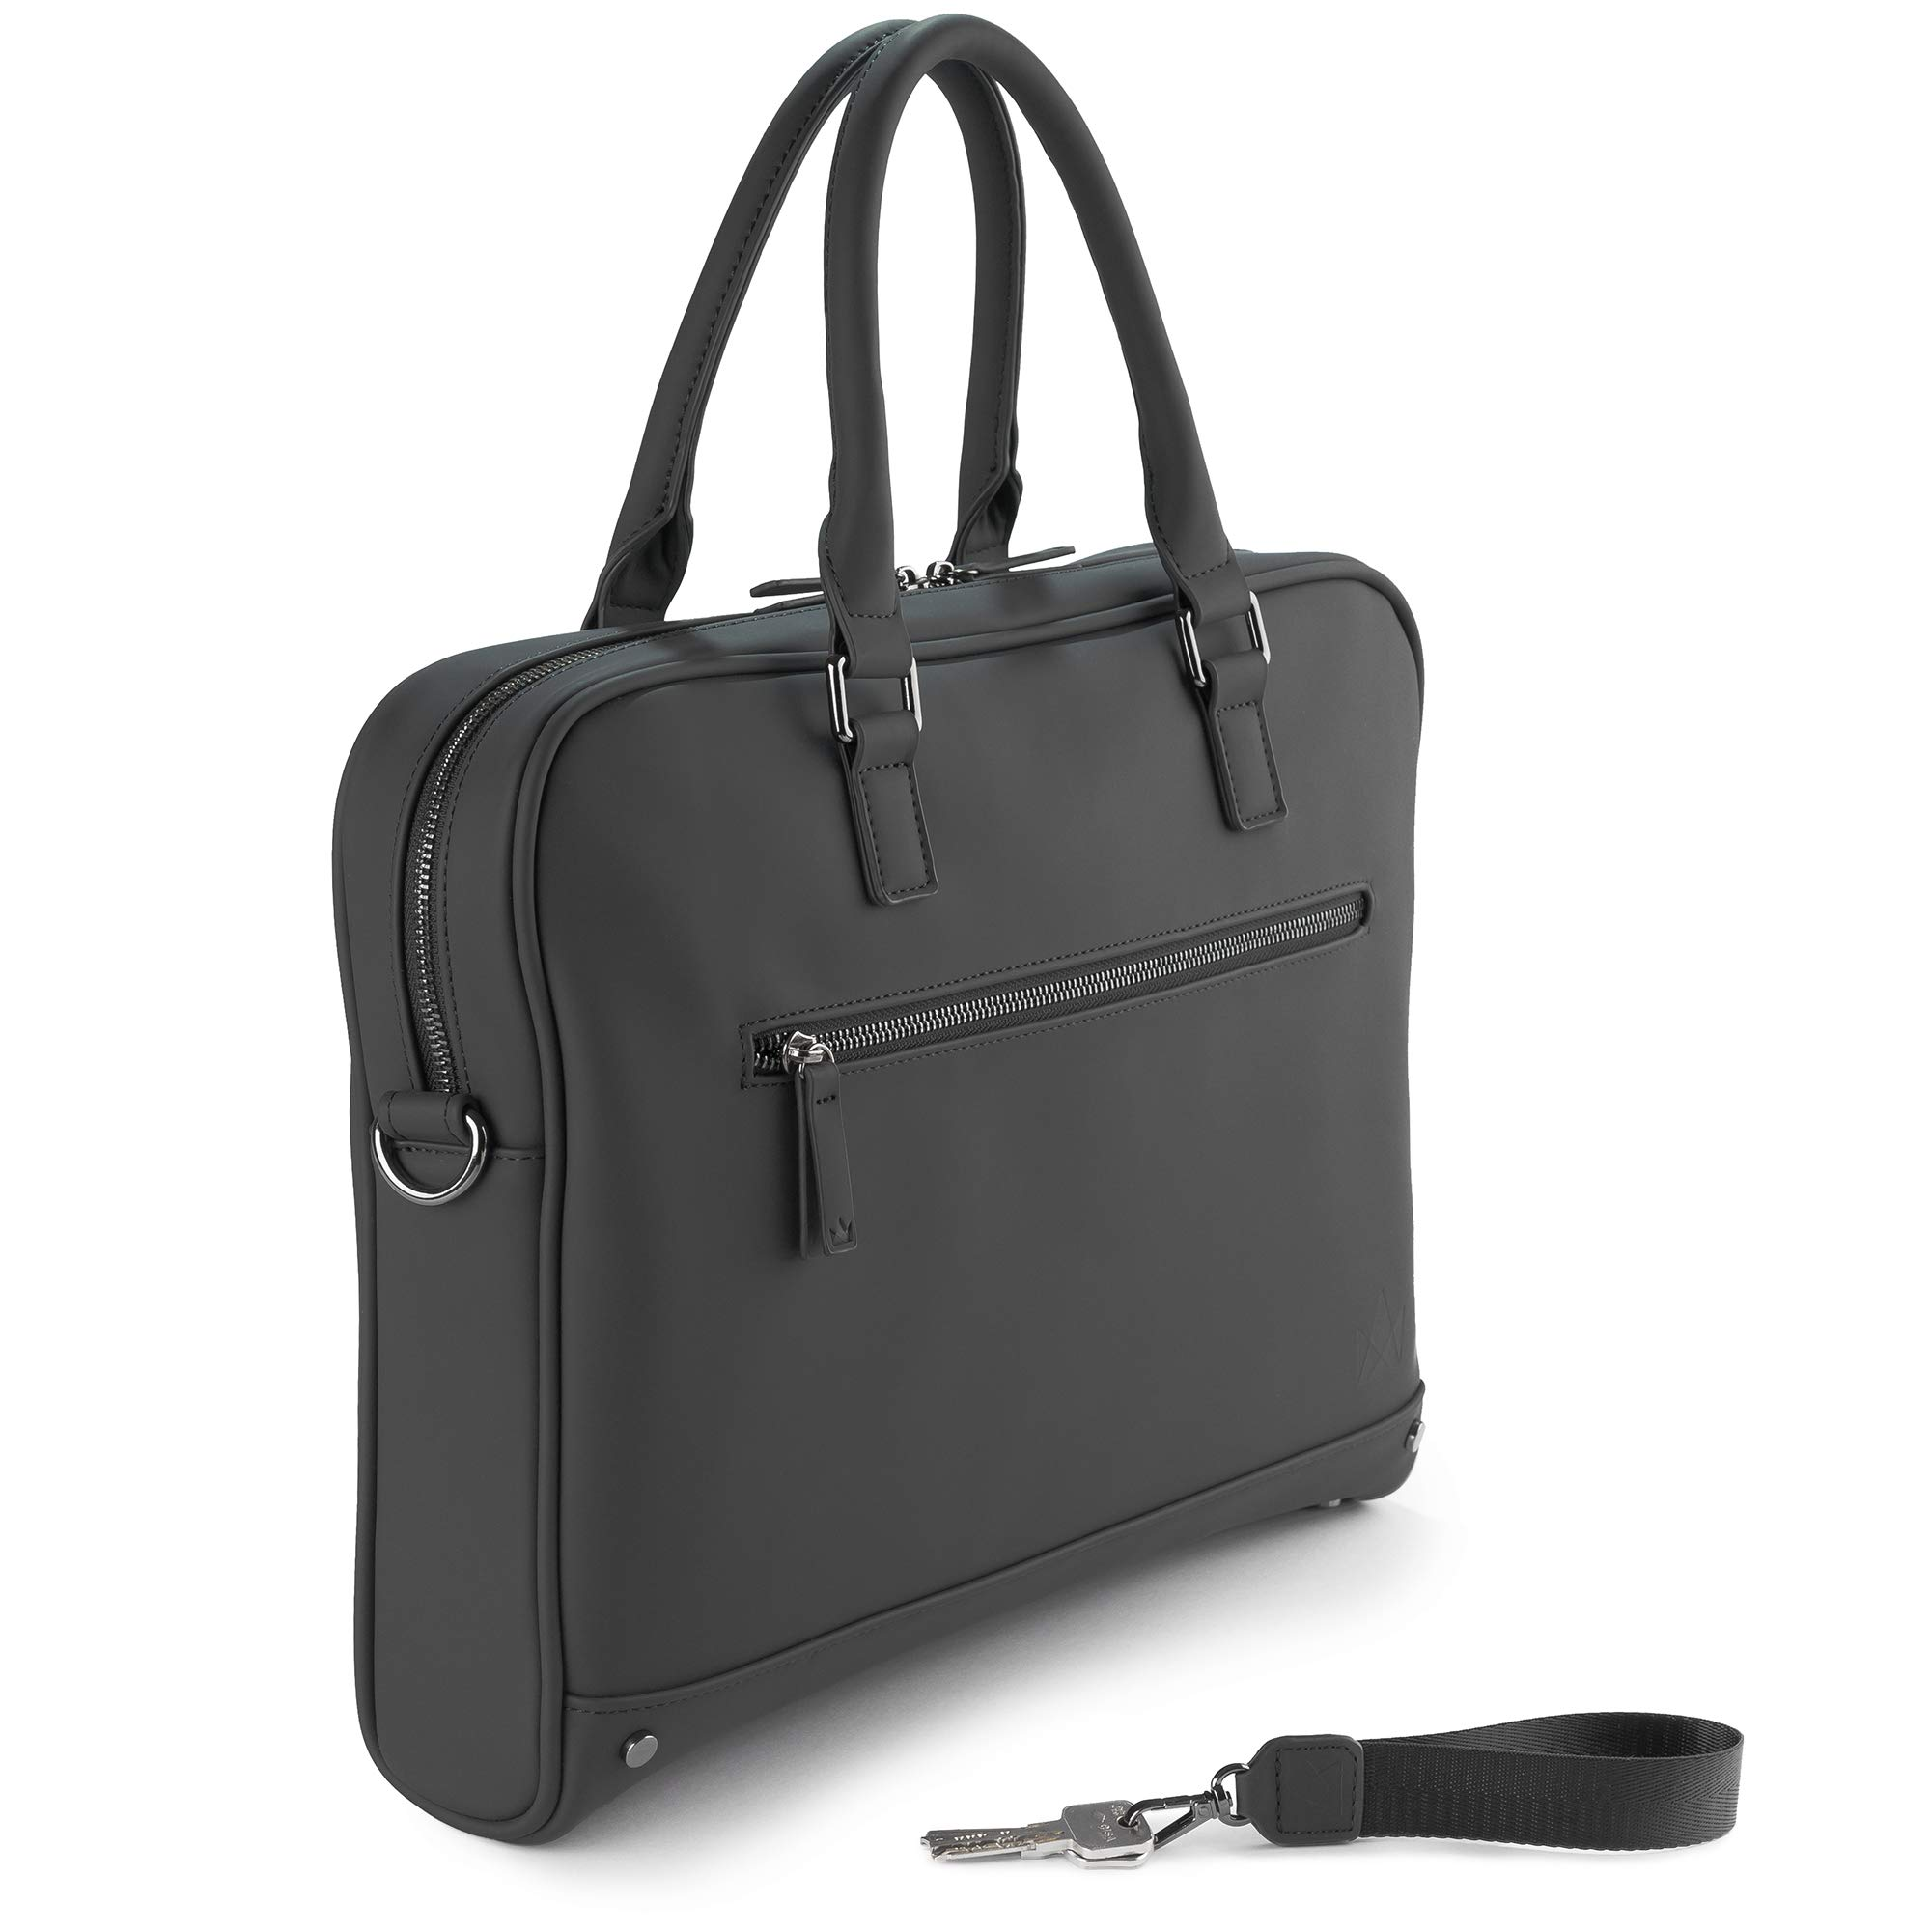 The Friendly Swede 13 inch Slim Laptop Bag for Women and Men - Shoulder Strap, Minimalist Notebook Executive Computer Case Business Briefcase, Vegan PU - VRETA by The Friendly Swede (Image #2)